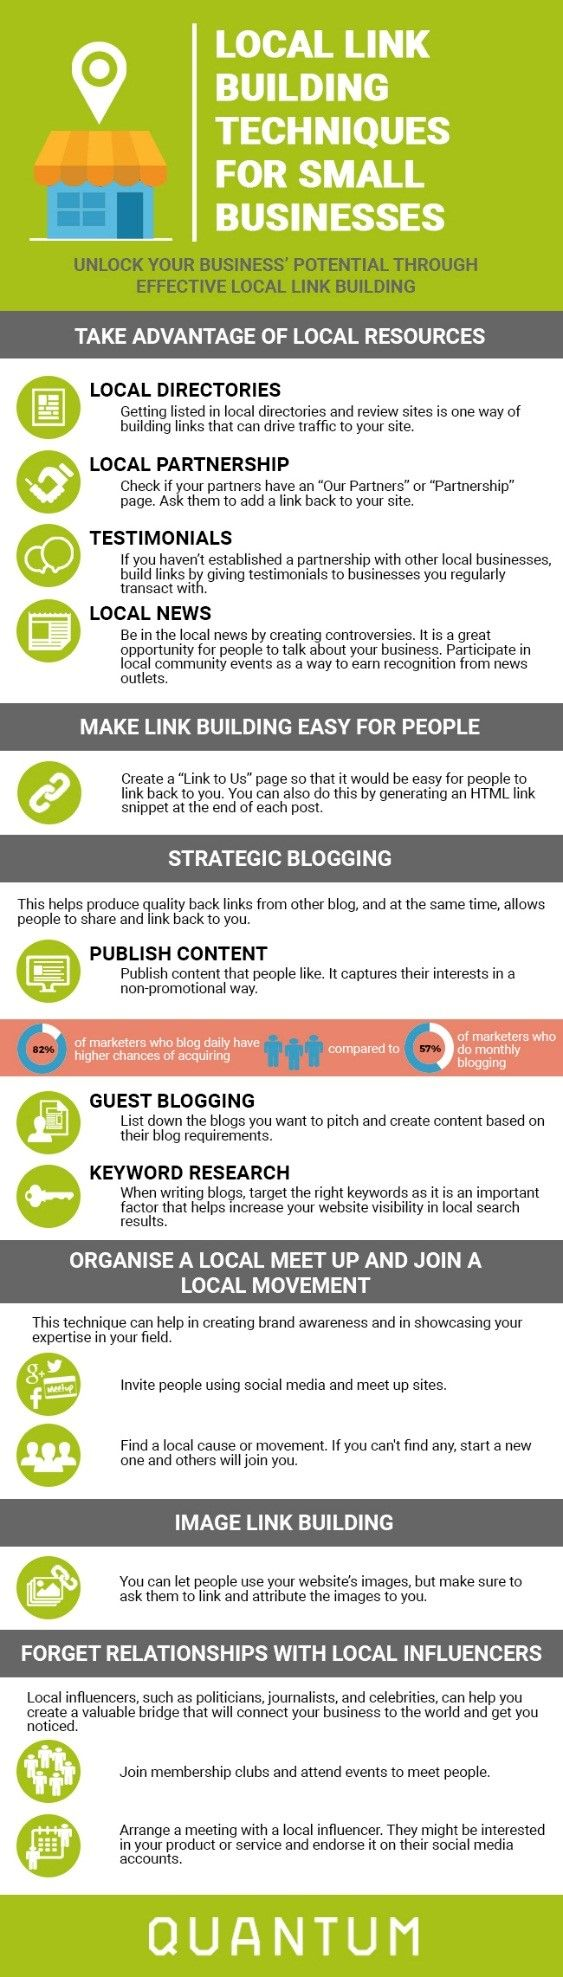 Local #SEO link building techniques for small businesses